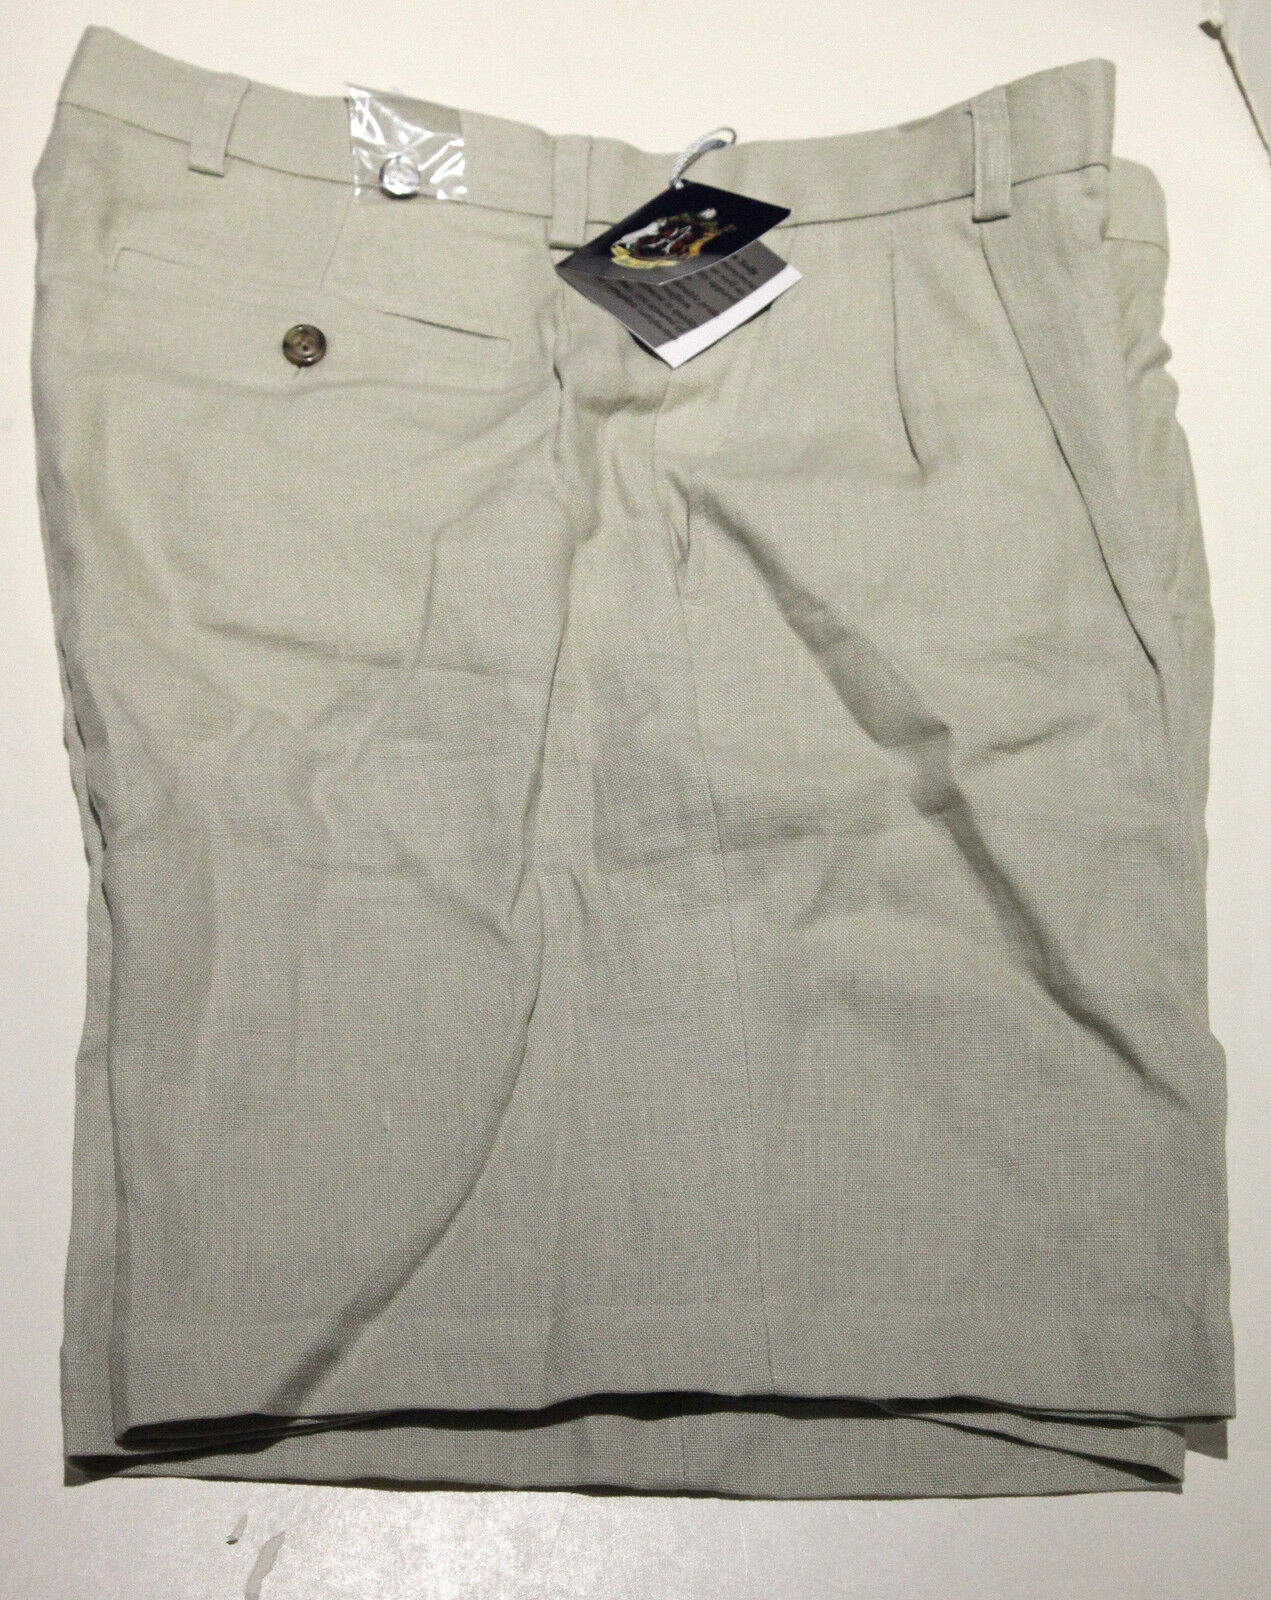 NWT Men's Allen Solly 100% Linen Pleated Shorts W36 Free Shipping